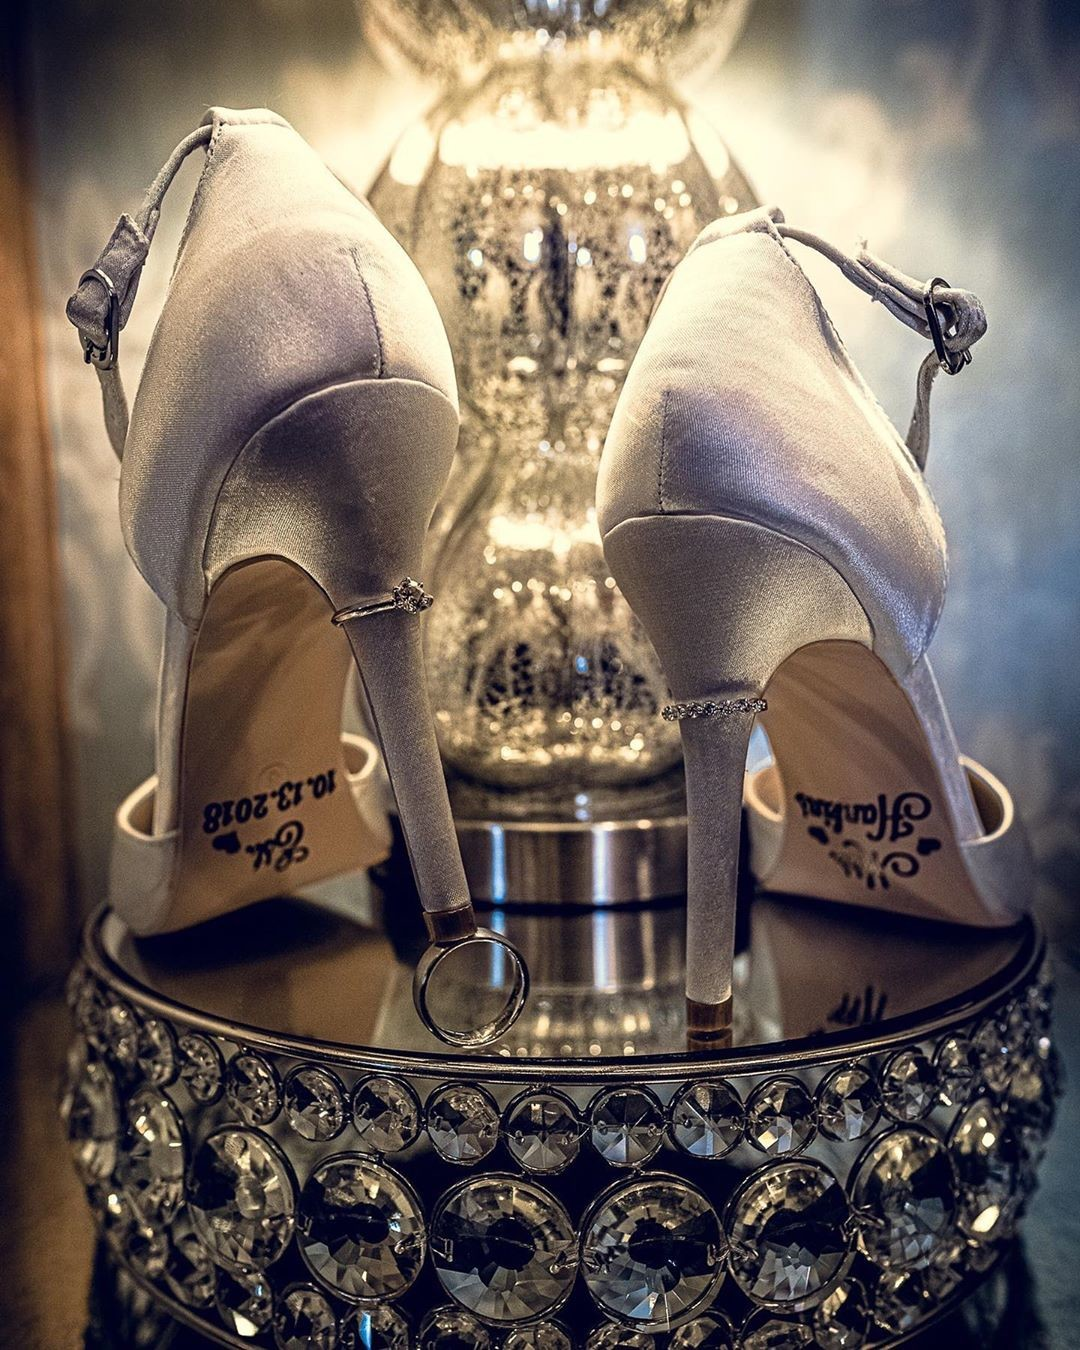 These Shoes! 👠